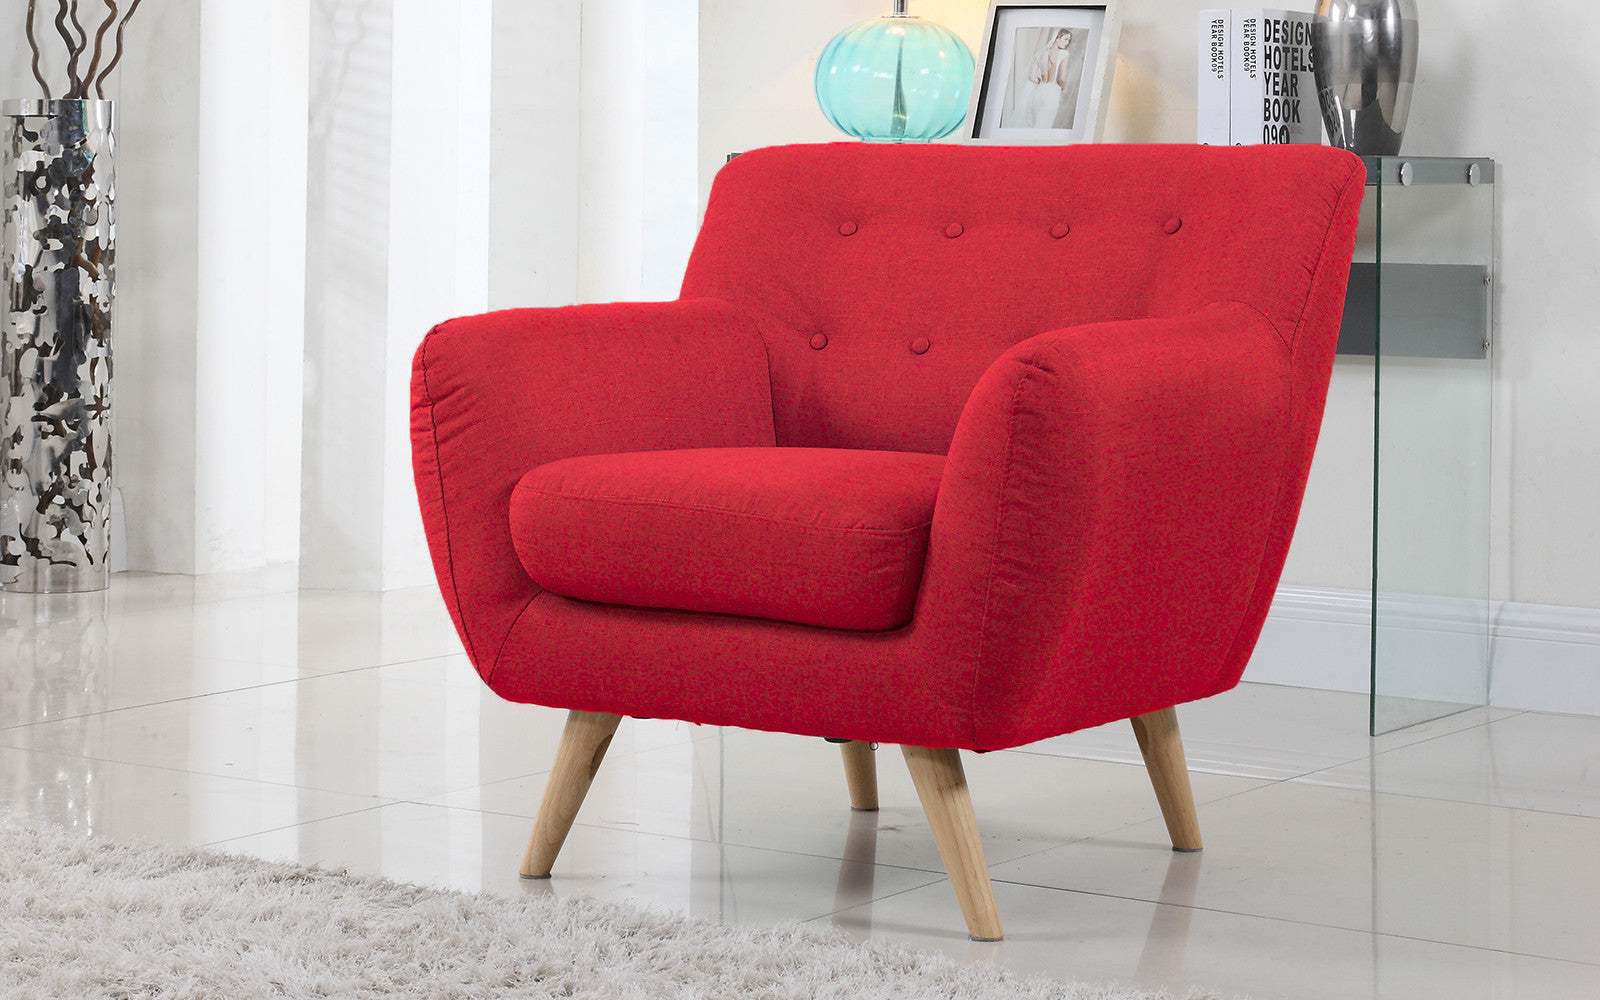 Ordinaire ... Nico Mid Century Modern Linen Chair In Red ...